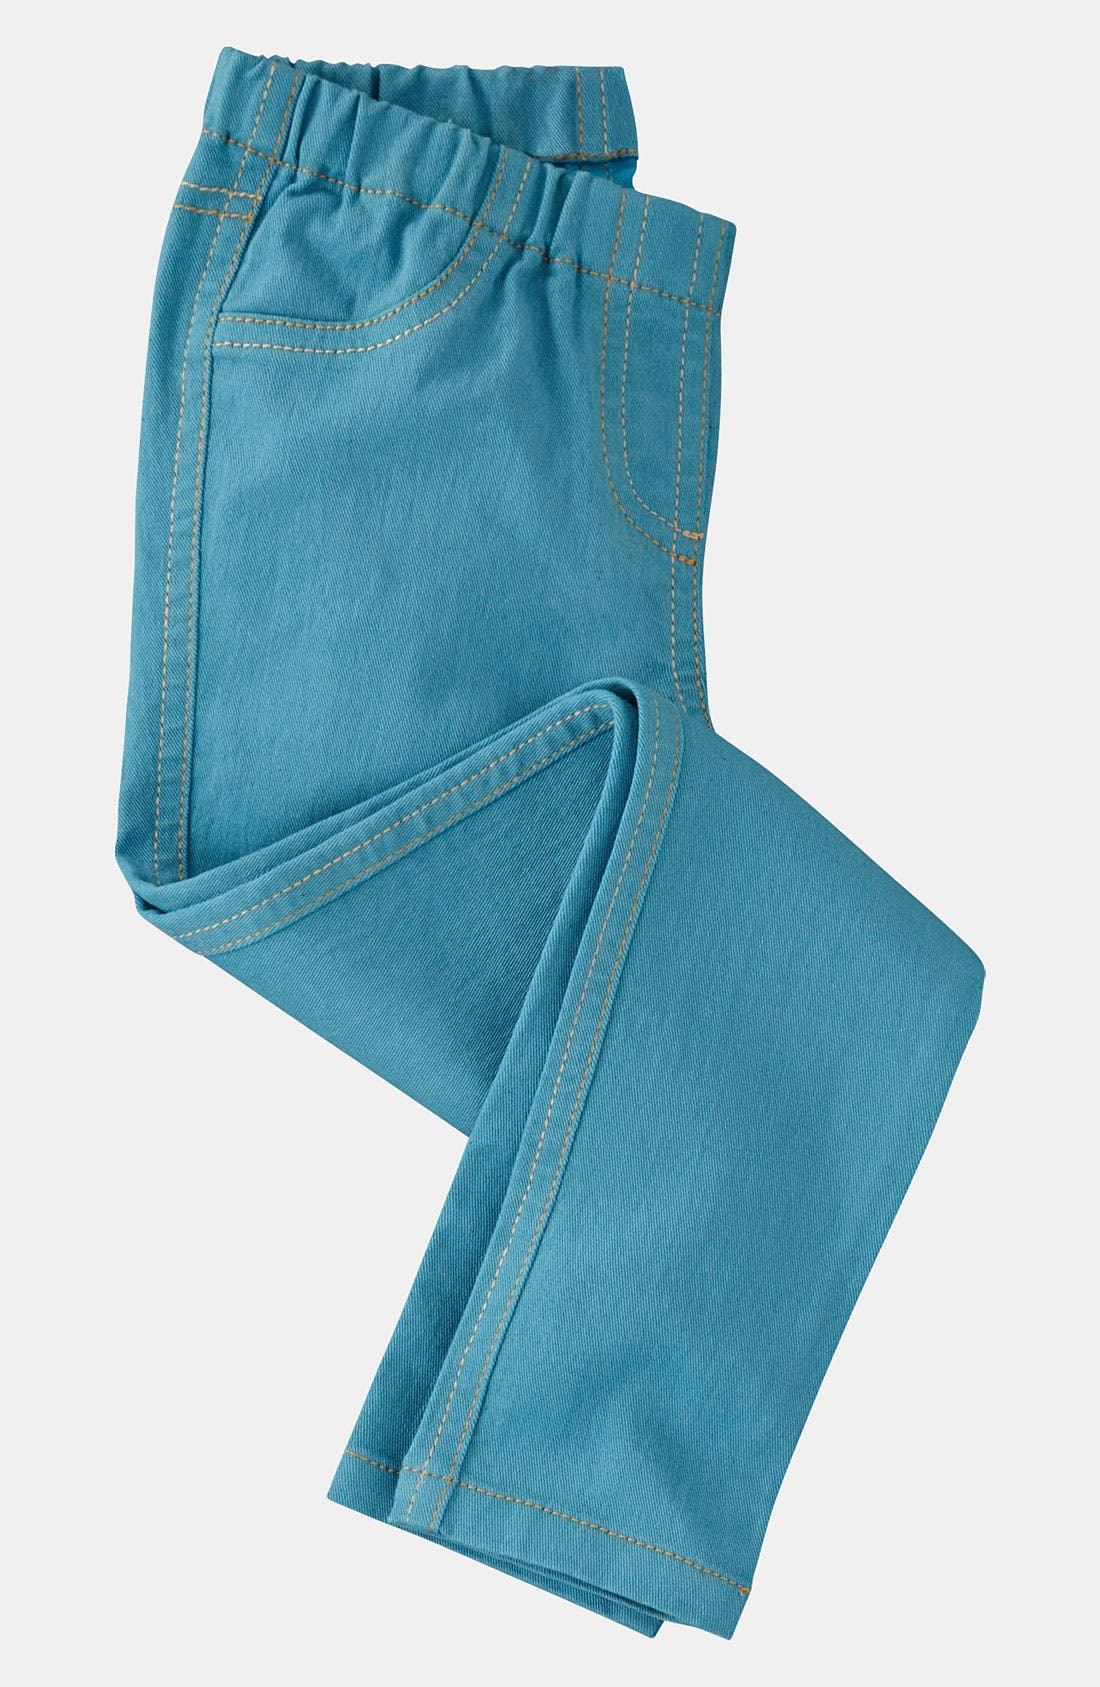 Alternate Image 1 Selected - Mini Boden Denim Leggings (Toddler)